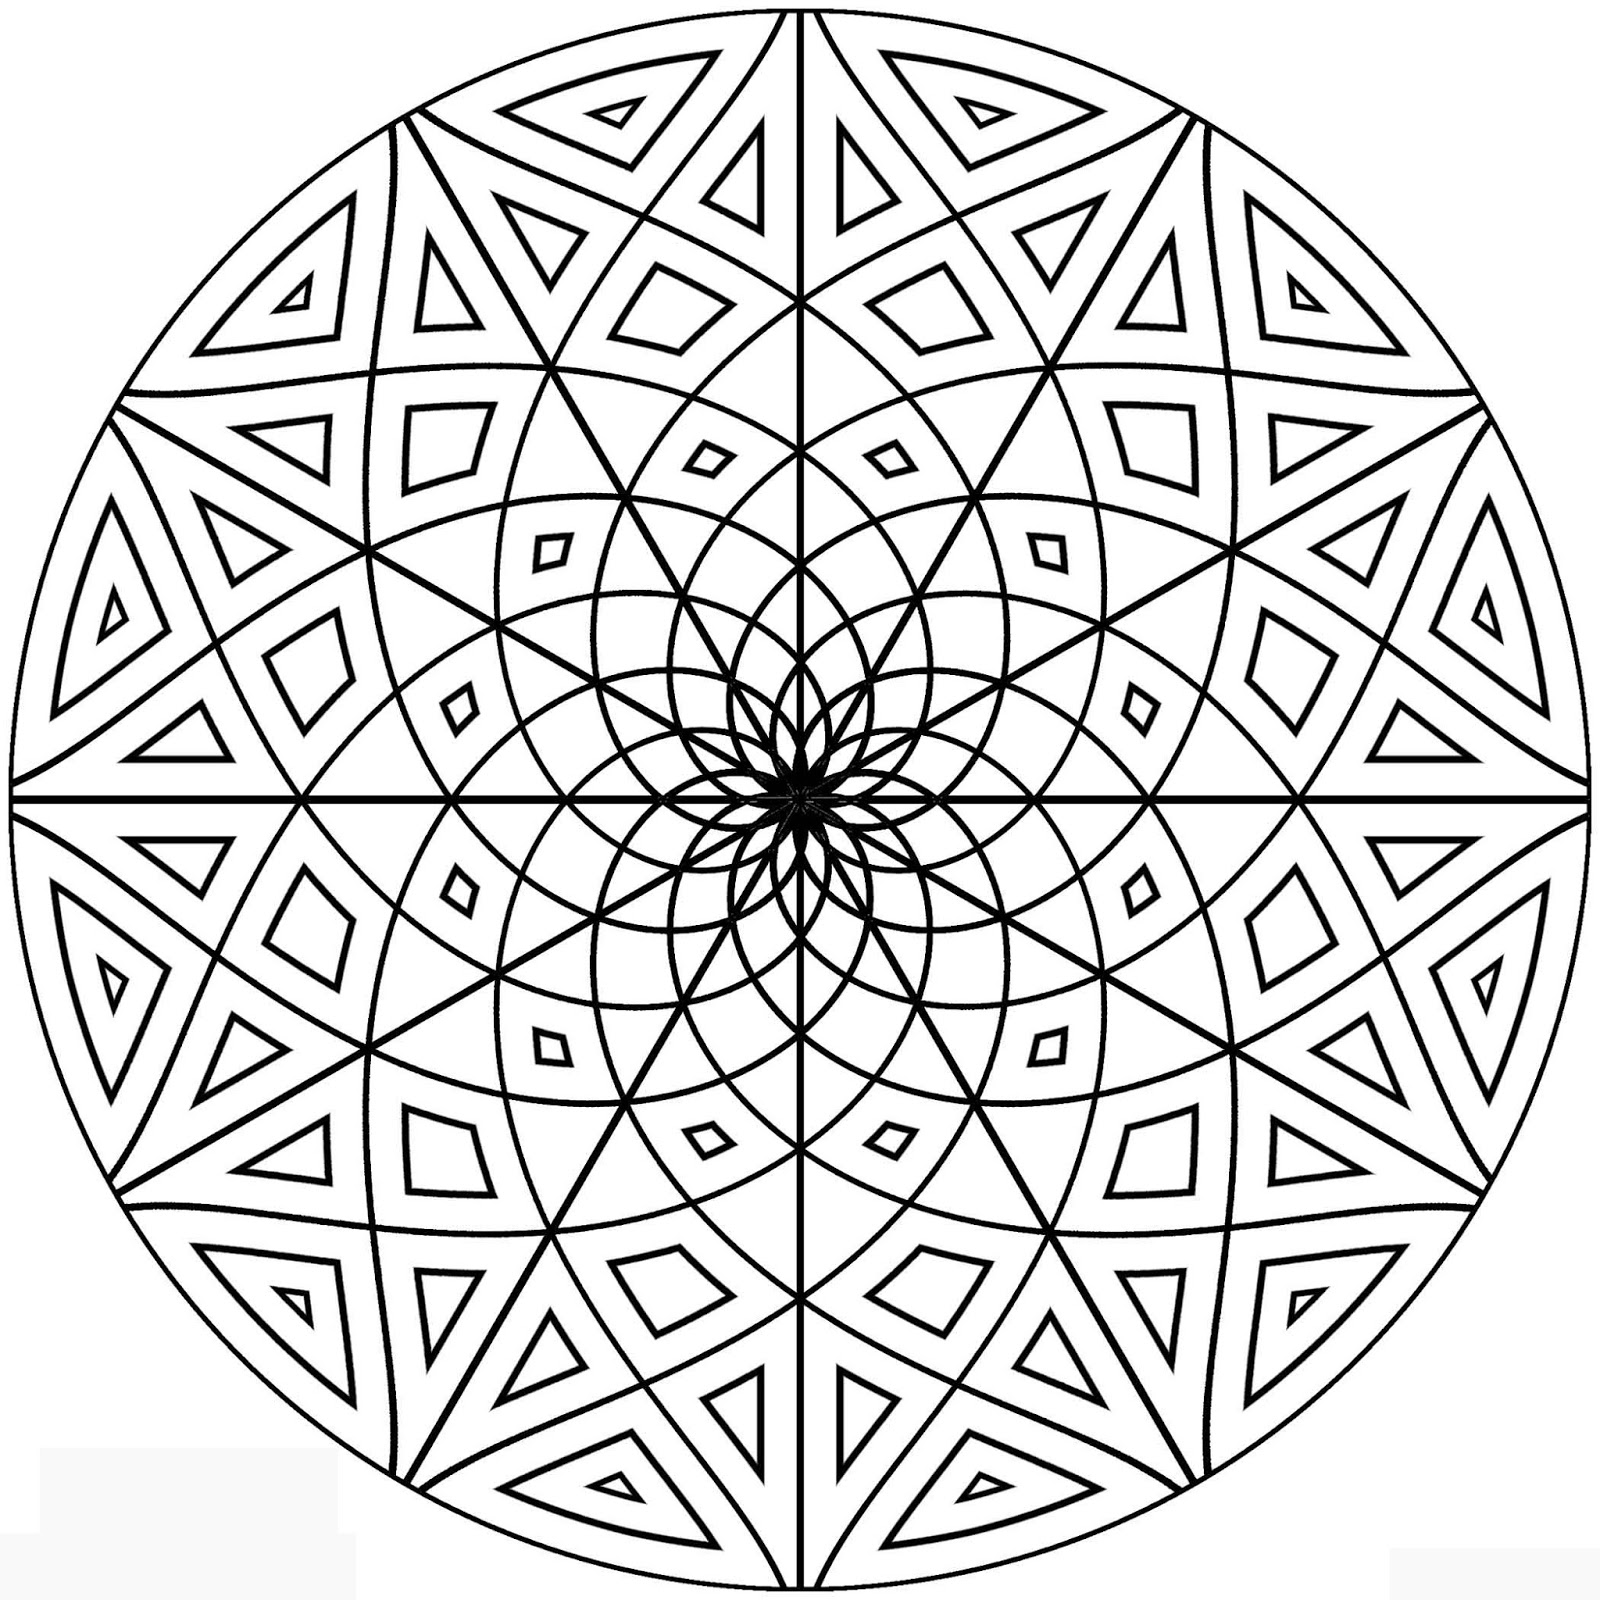 cool patterns to color try piy print it yourself patterns for some cool to color patterns cool